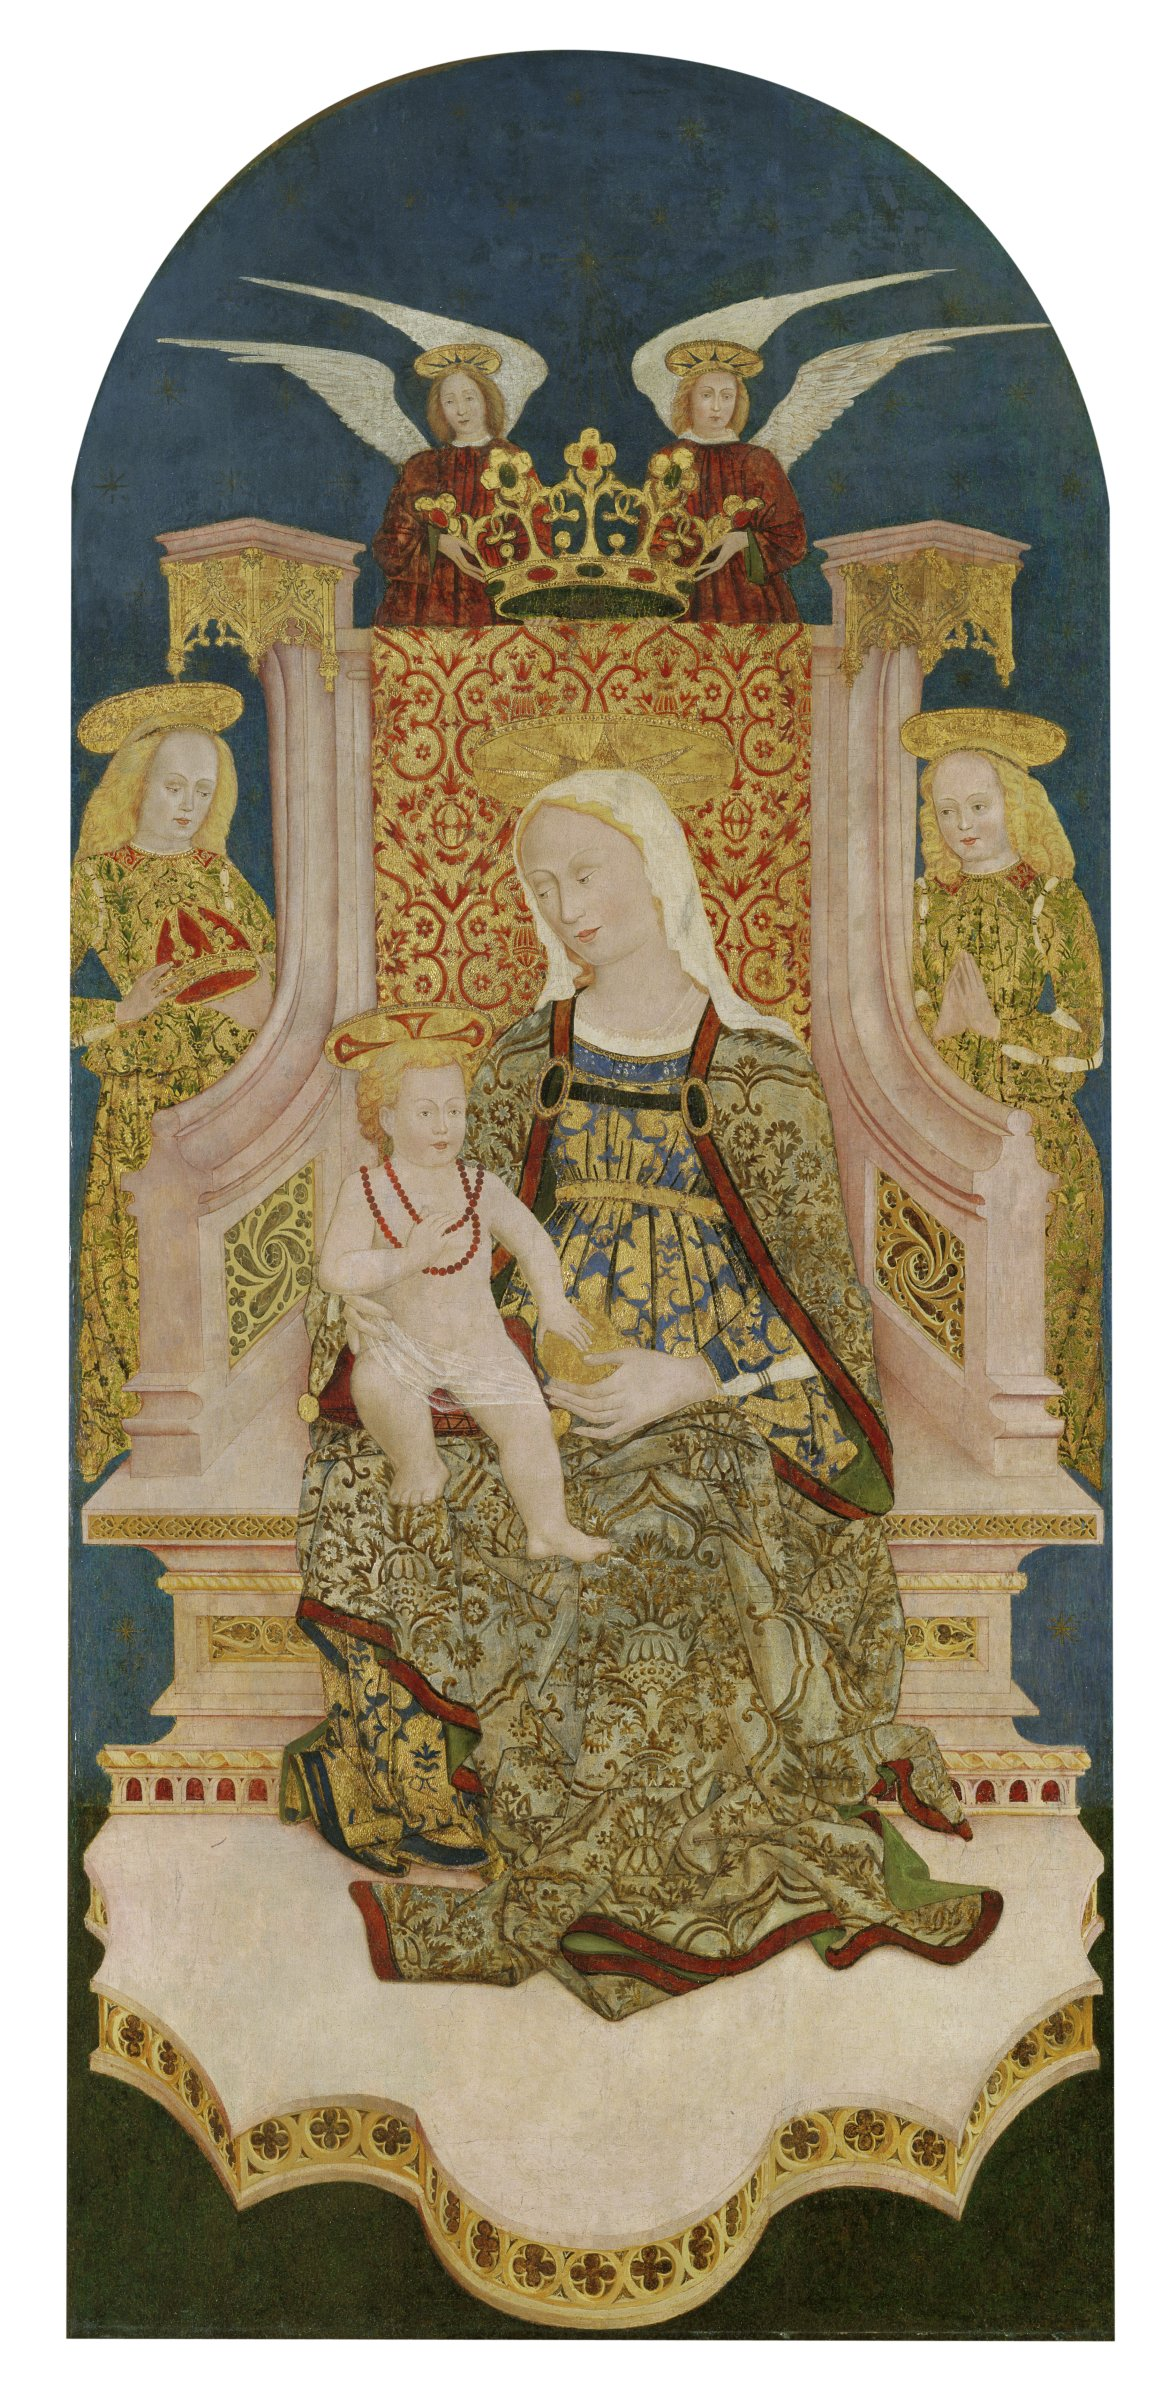 Surrounded by angels, the Madonna sits in a Gothic throne with the Christ Child on her lap. He wears a coral necklace and touches a gold ball that his mother is holding.